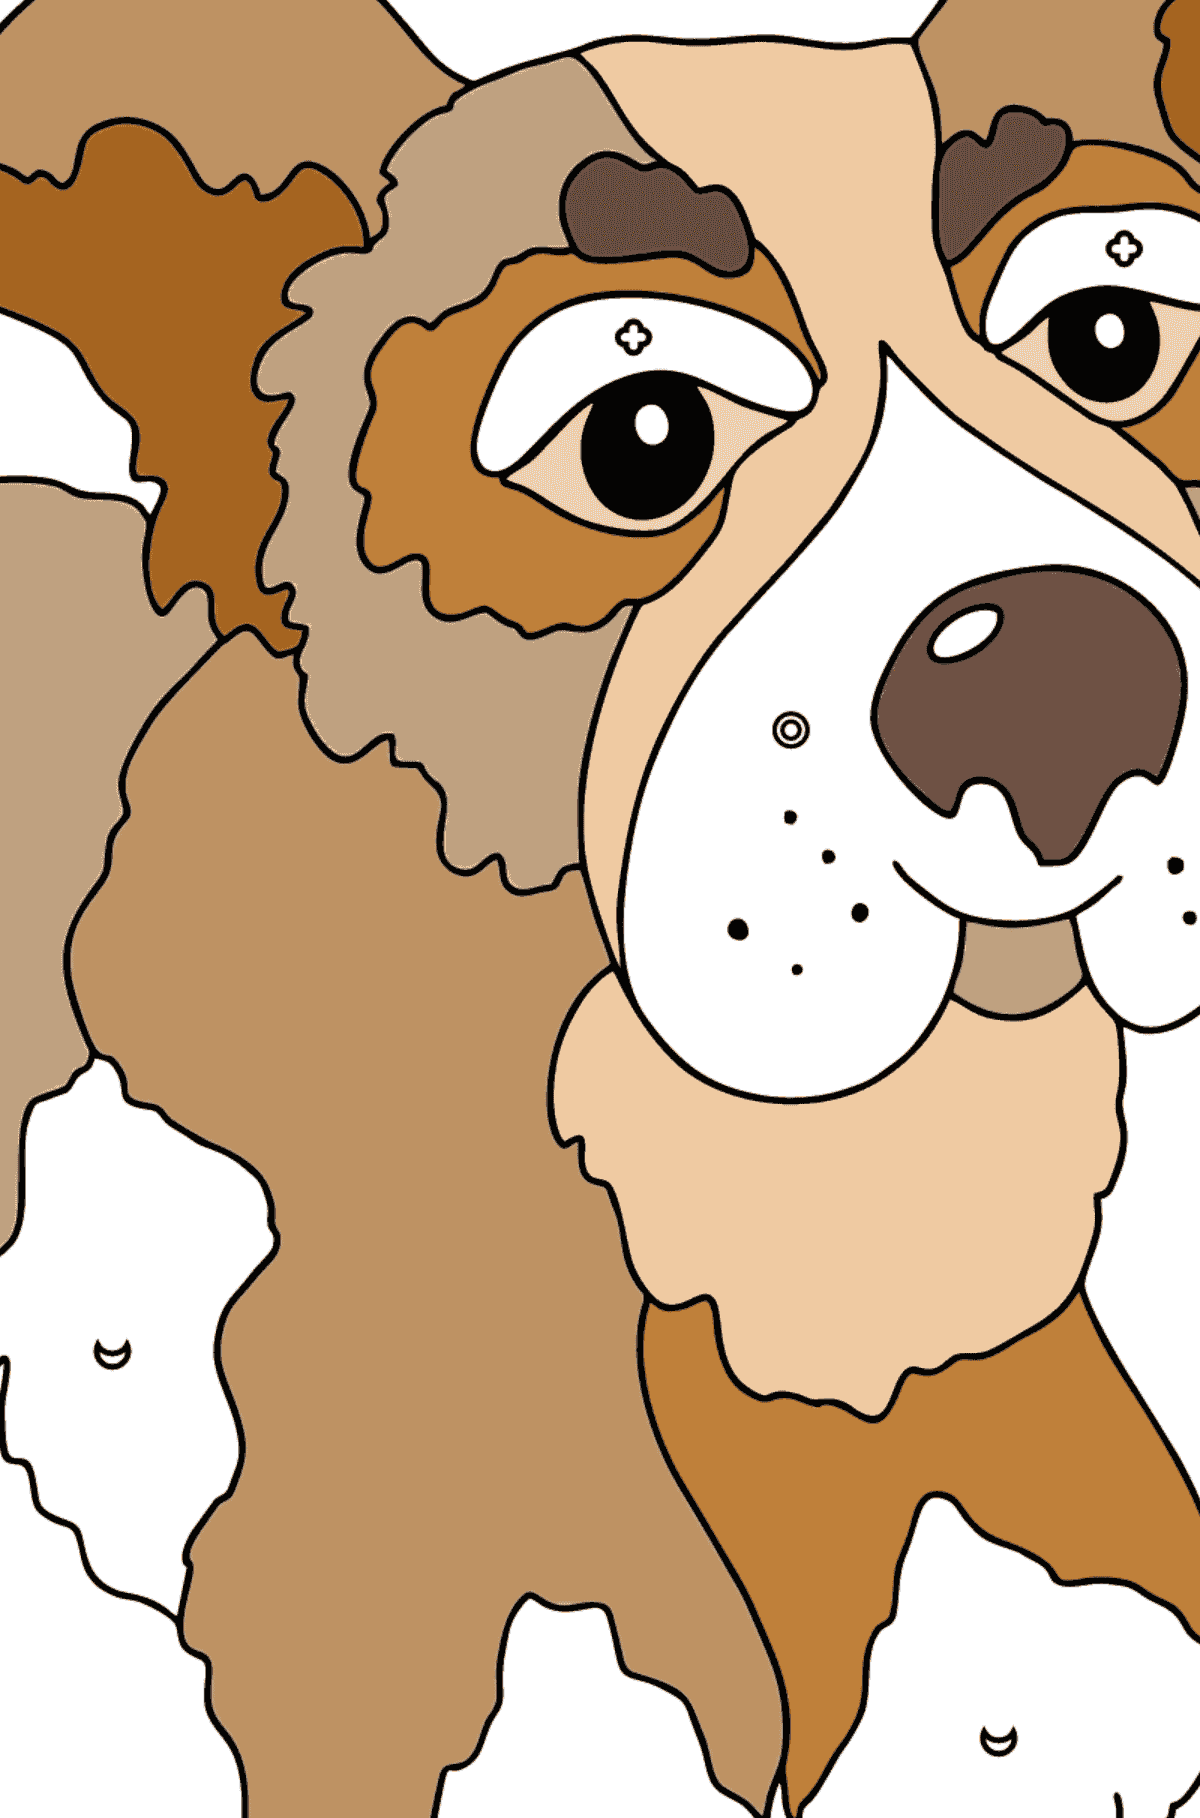 Coloring Page - A Dog is Playing with a Ball for Kids  - Color by Geometric Shapes